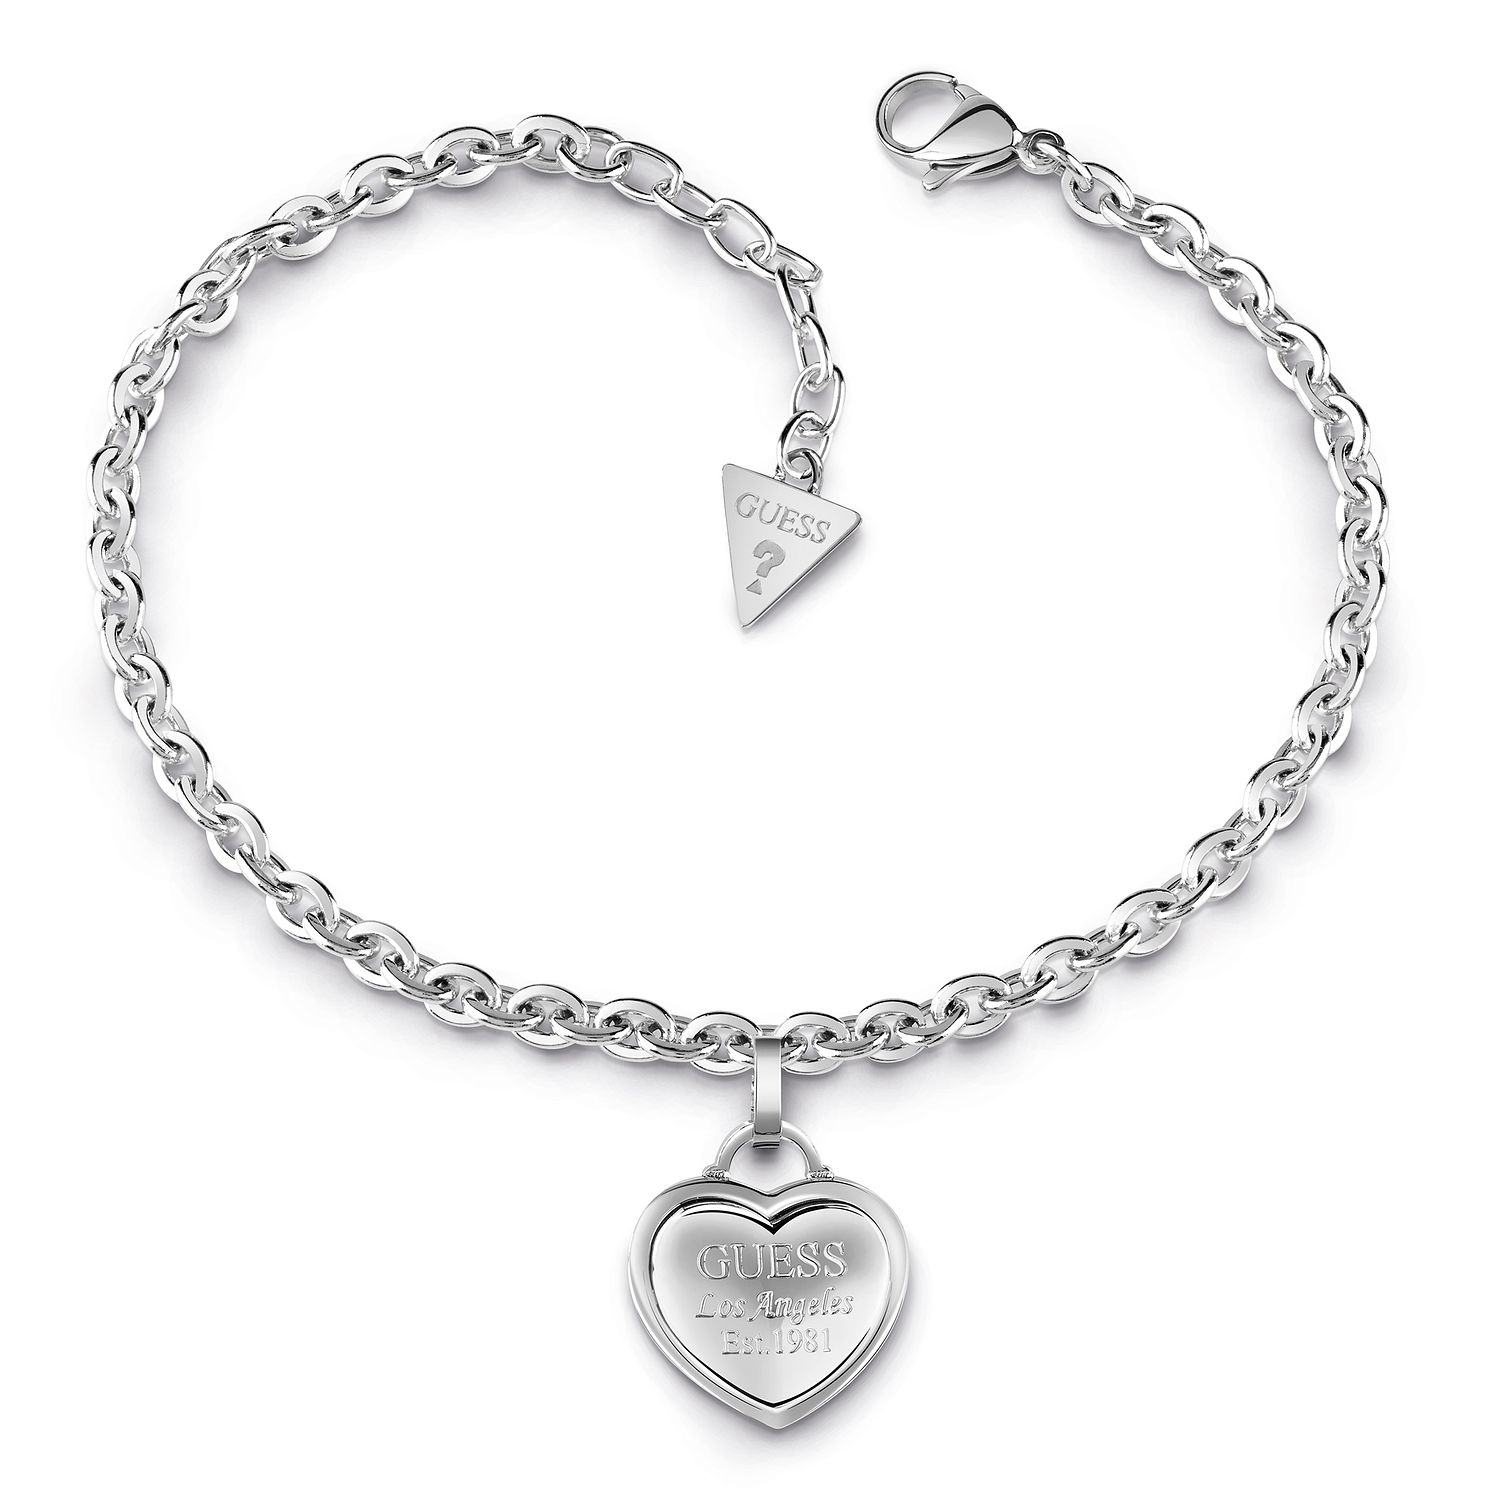 Guess Rhodium Plated Heart Charm Bracelet - Product number 1082566